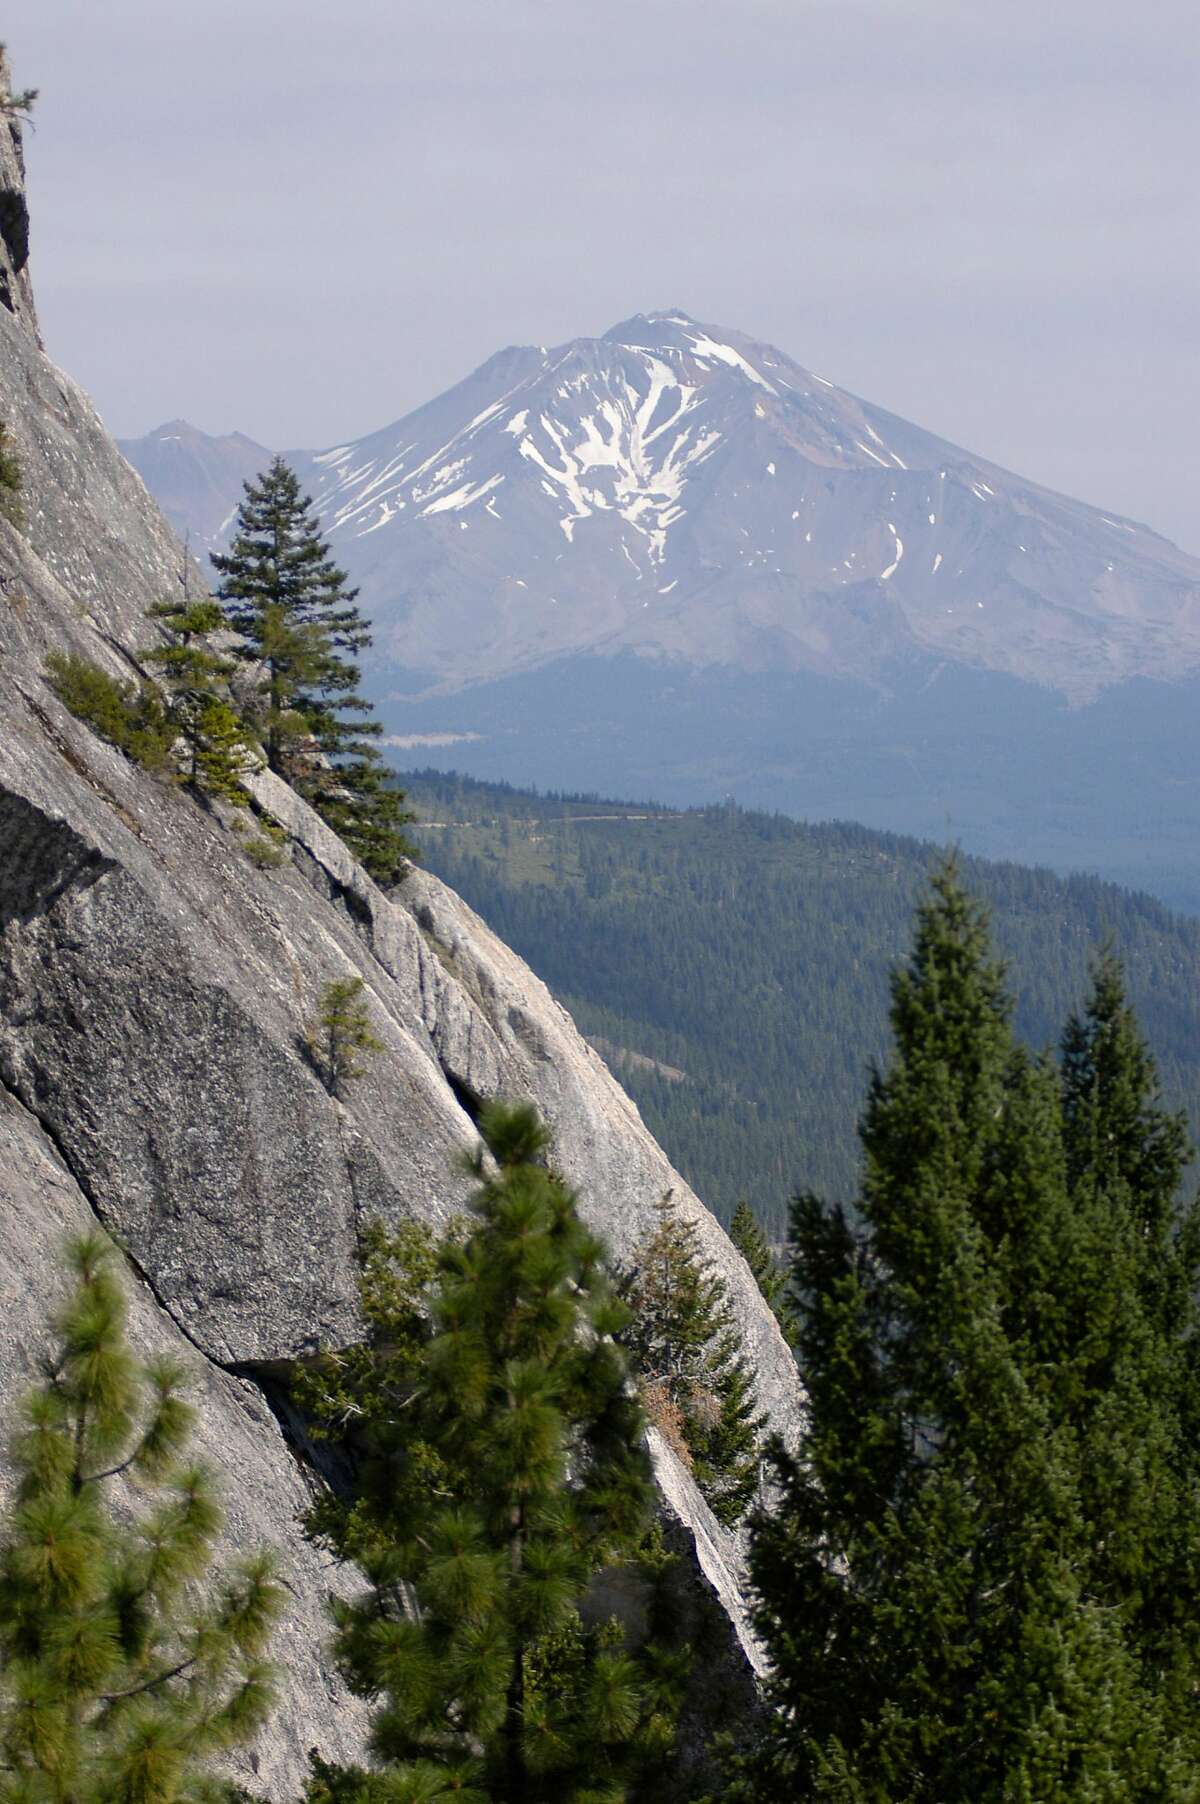 Mount Shasta in the distance, as seen from the Crags Trail in Castle Crags State Park near Dunsmuir. Dunsmuir on 9/8/05. Spud Hilton / The Chronicle Ran on: 06-18-2006 Mount Shasta, as seen from Castle Crags State Park, has a deep snowpack this year, to the advantage of climbers. Ran on: 06-18-2006 Ran on: 06-18-2006 Ran on: 06-18-2006 Ran on: 01-17-2007 Mount Shasta could be the site of a major Nestle plant, barring a change of heart by the courts.